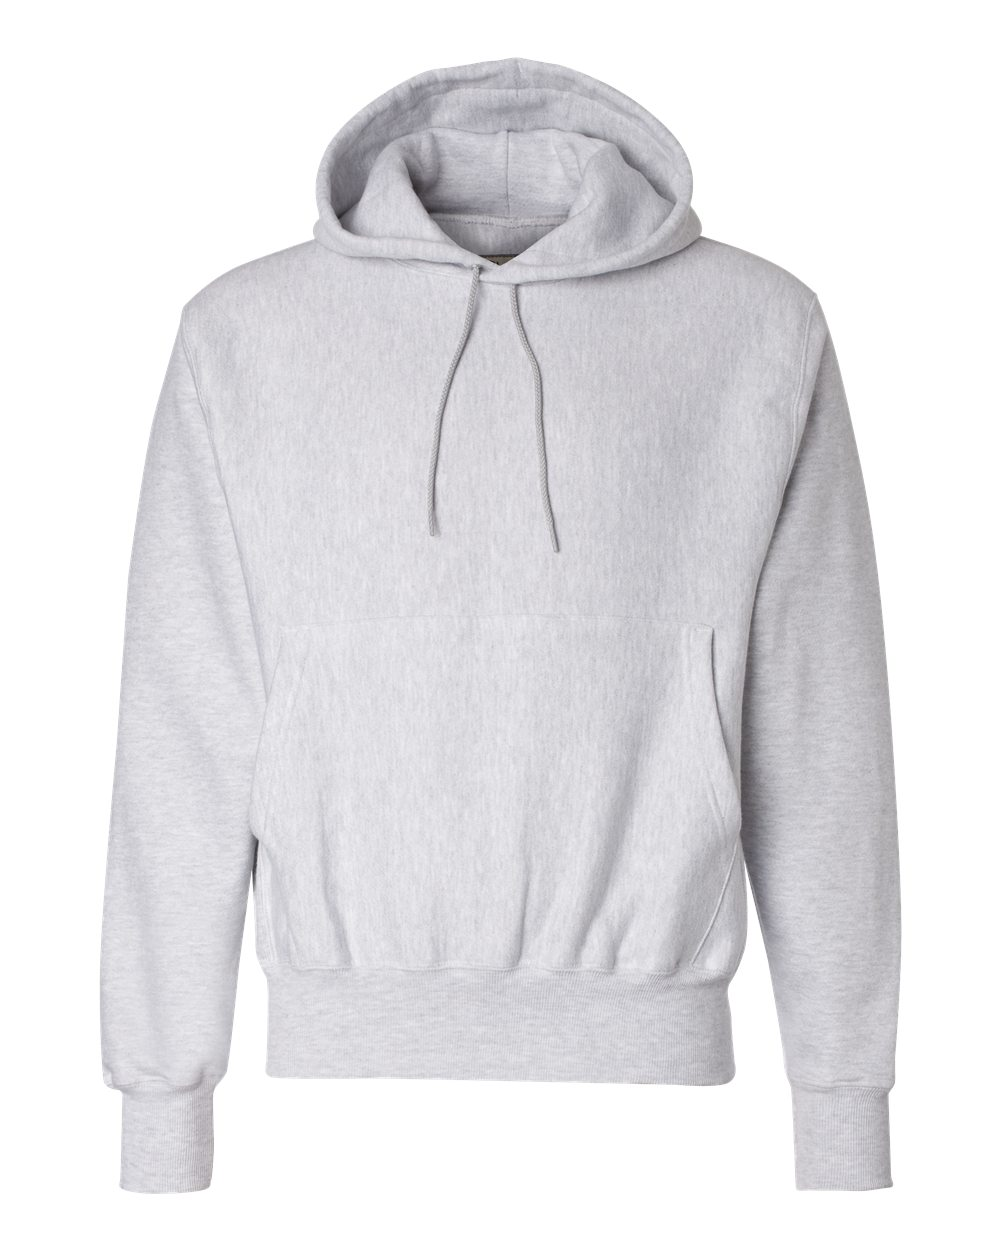 Champion-Mens-Reverse-Weave-Hooded-Pullover-Sweatshirt-S101-up-to-3XL thumbnail 45